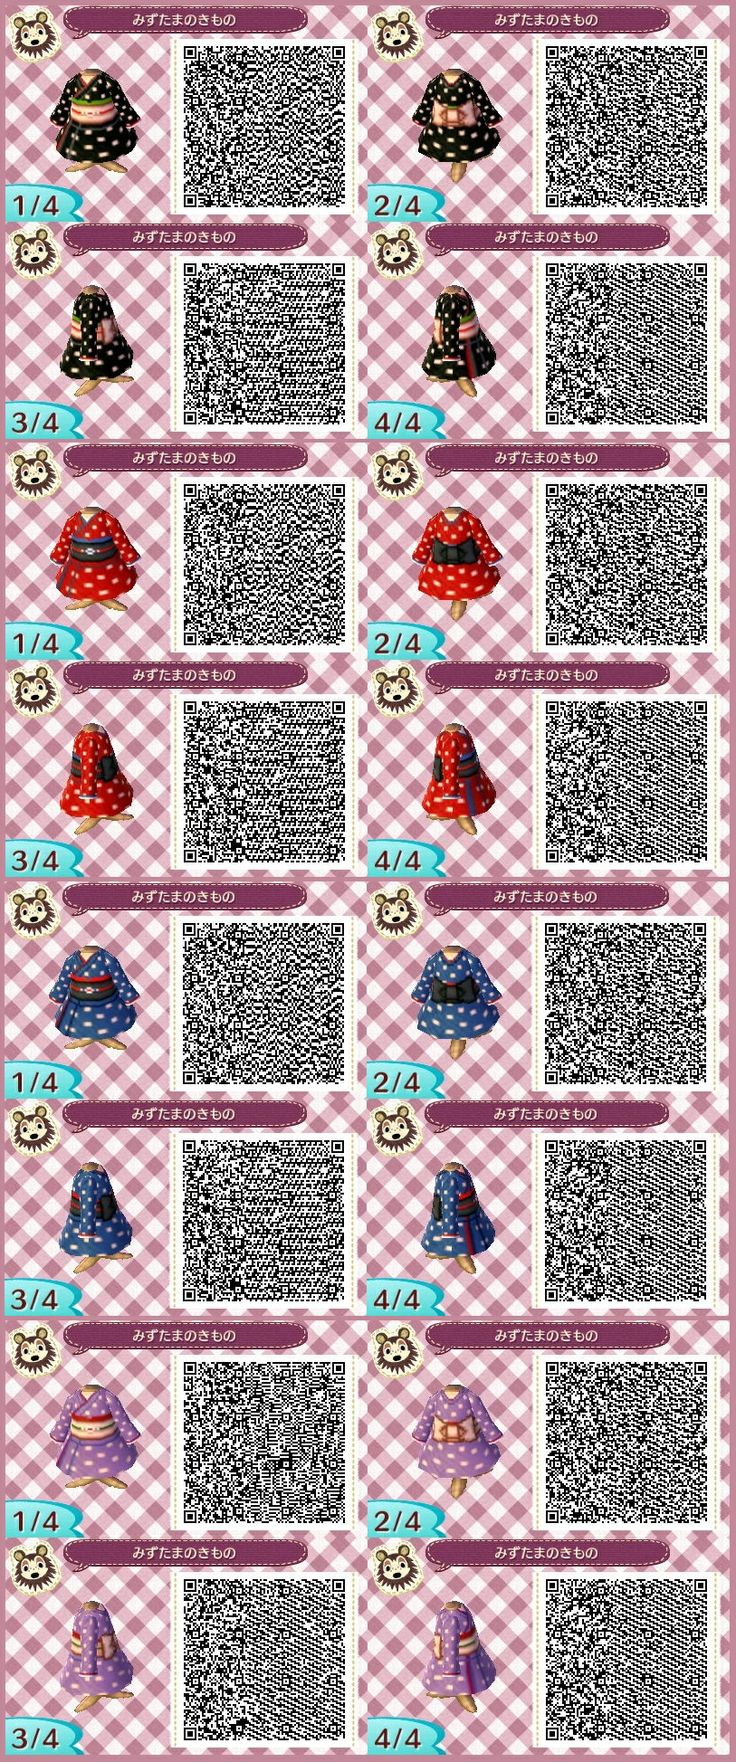 Image of: Acnl Animal Crossing New Leaf Winter Clothes Qr Codes The Halloween Decorativeviewcom Animal Crossing Qr Codes Winter Clothes Labzada Shirt